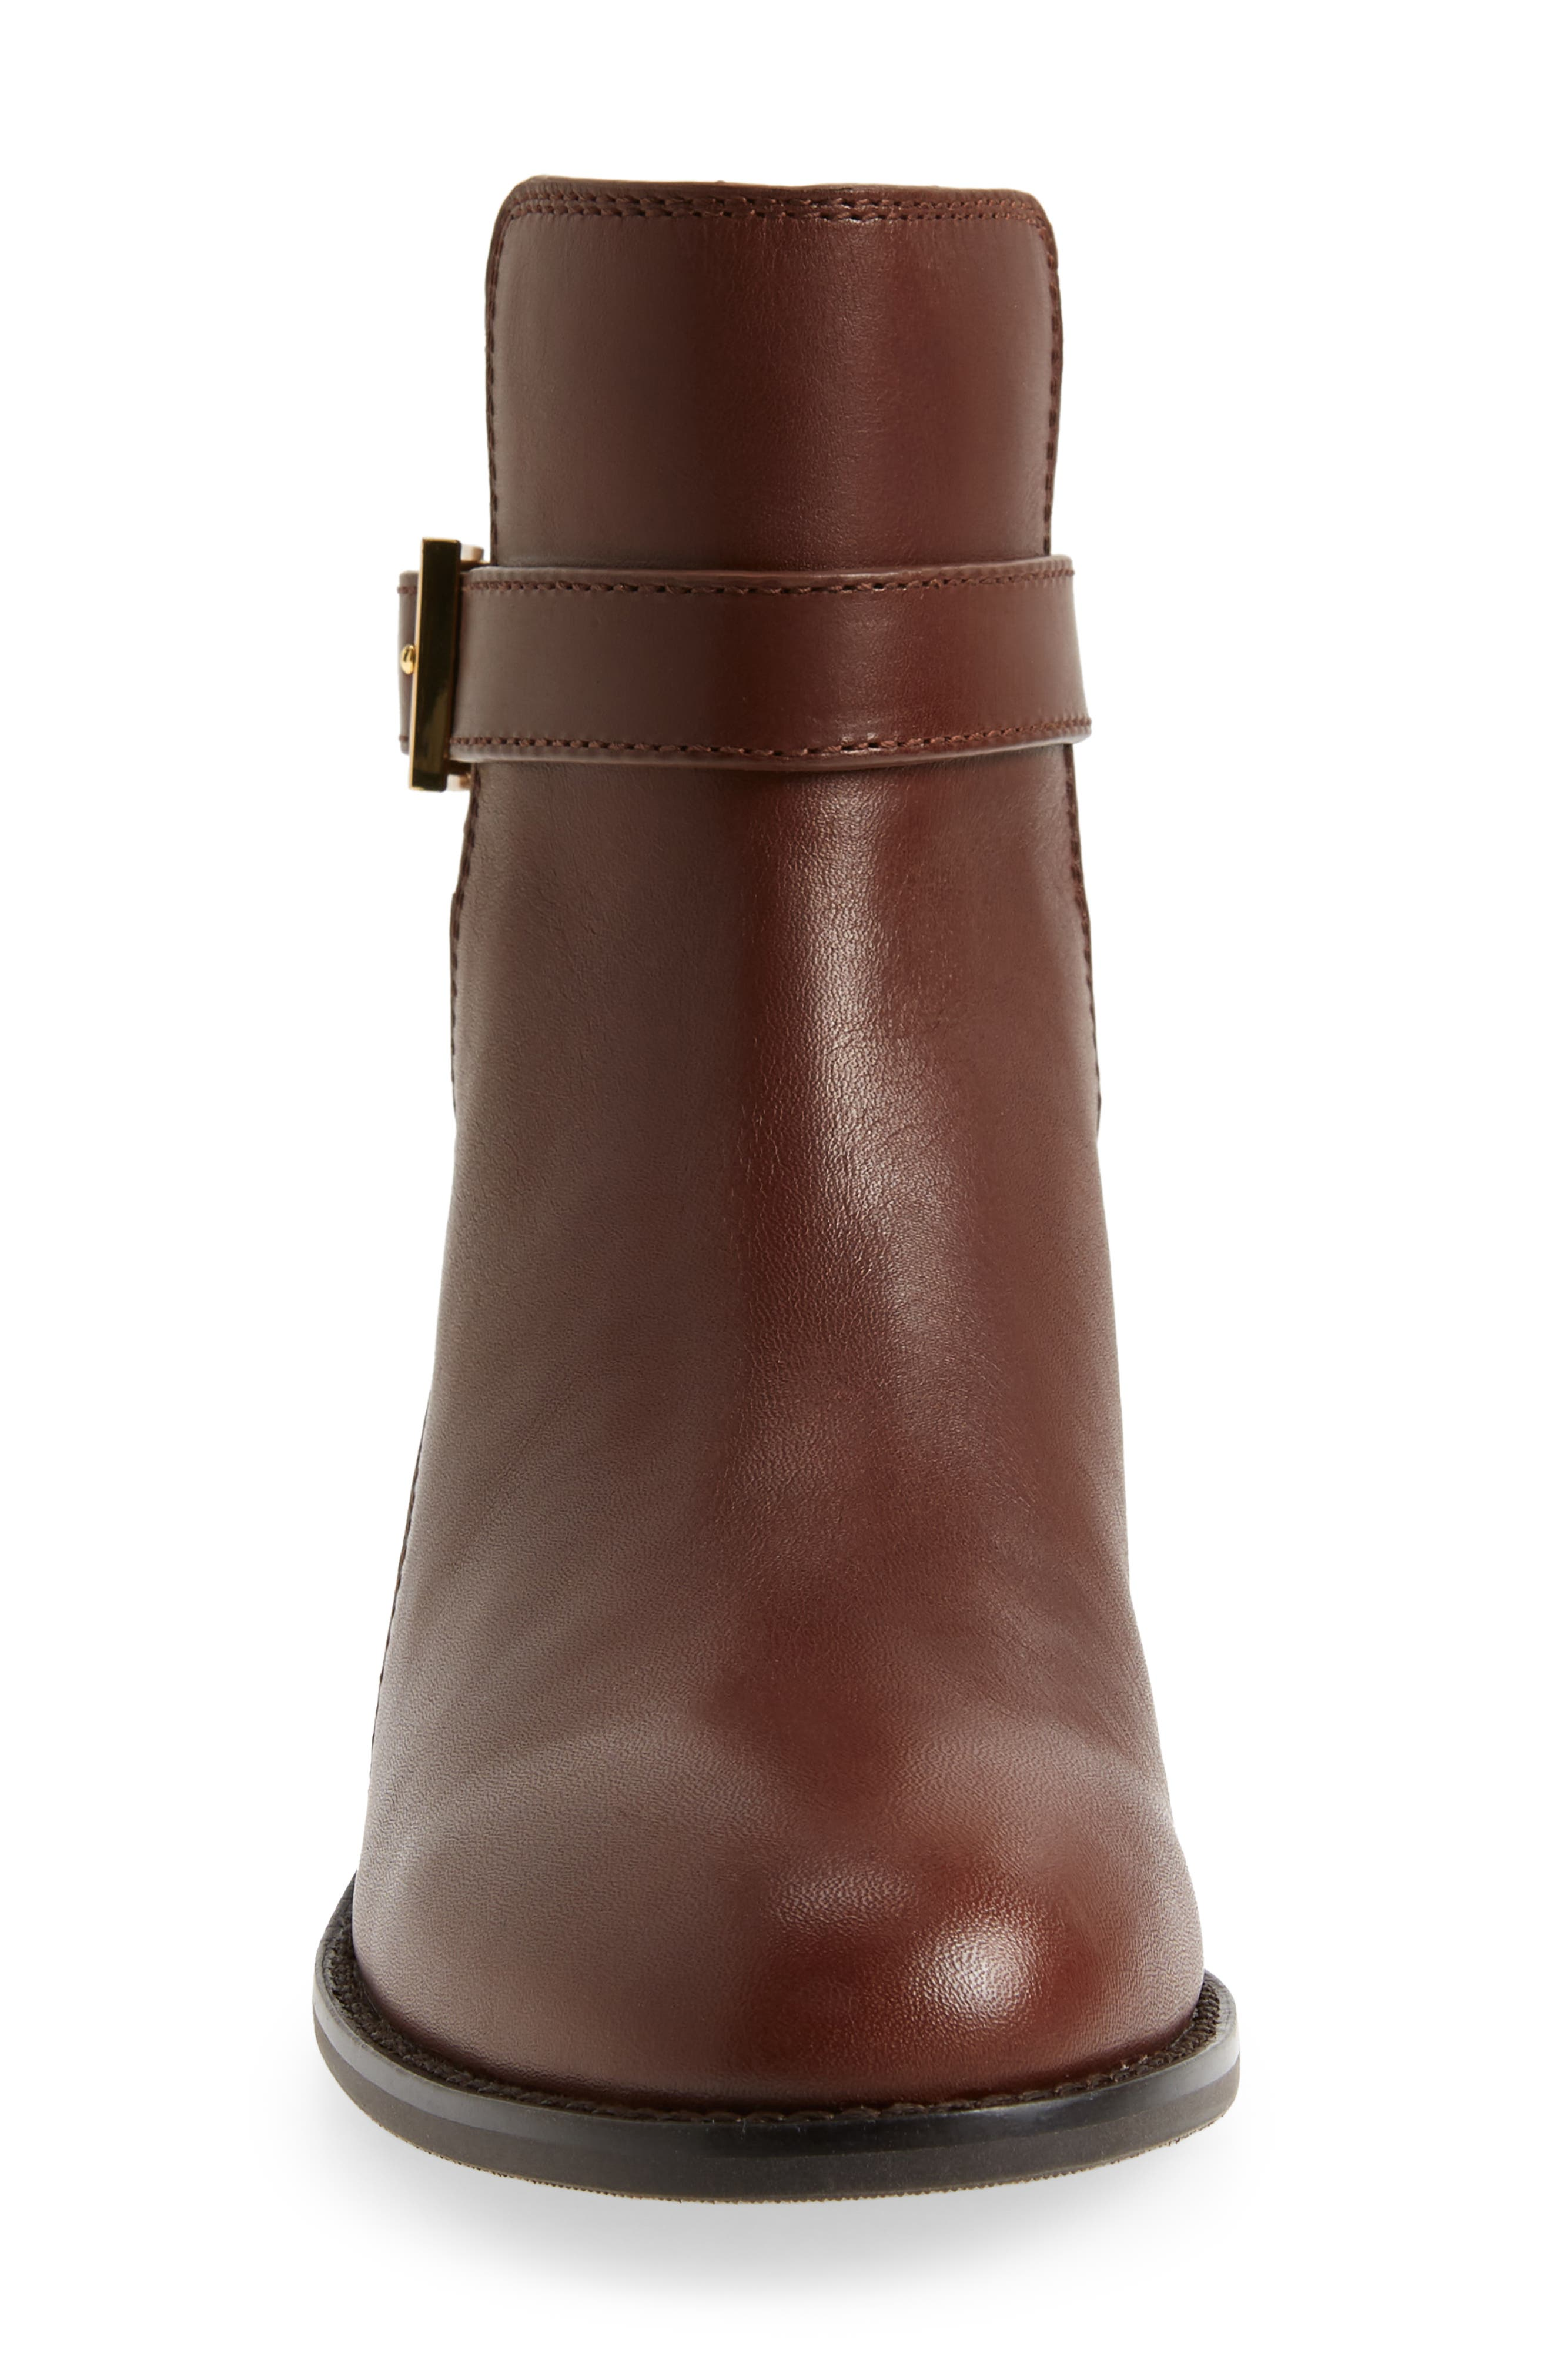 TORY BURCH, Brooke Bootie, Alternate thumbnail 4, color, 200